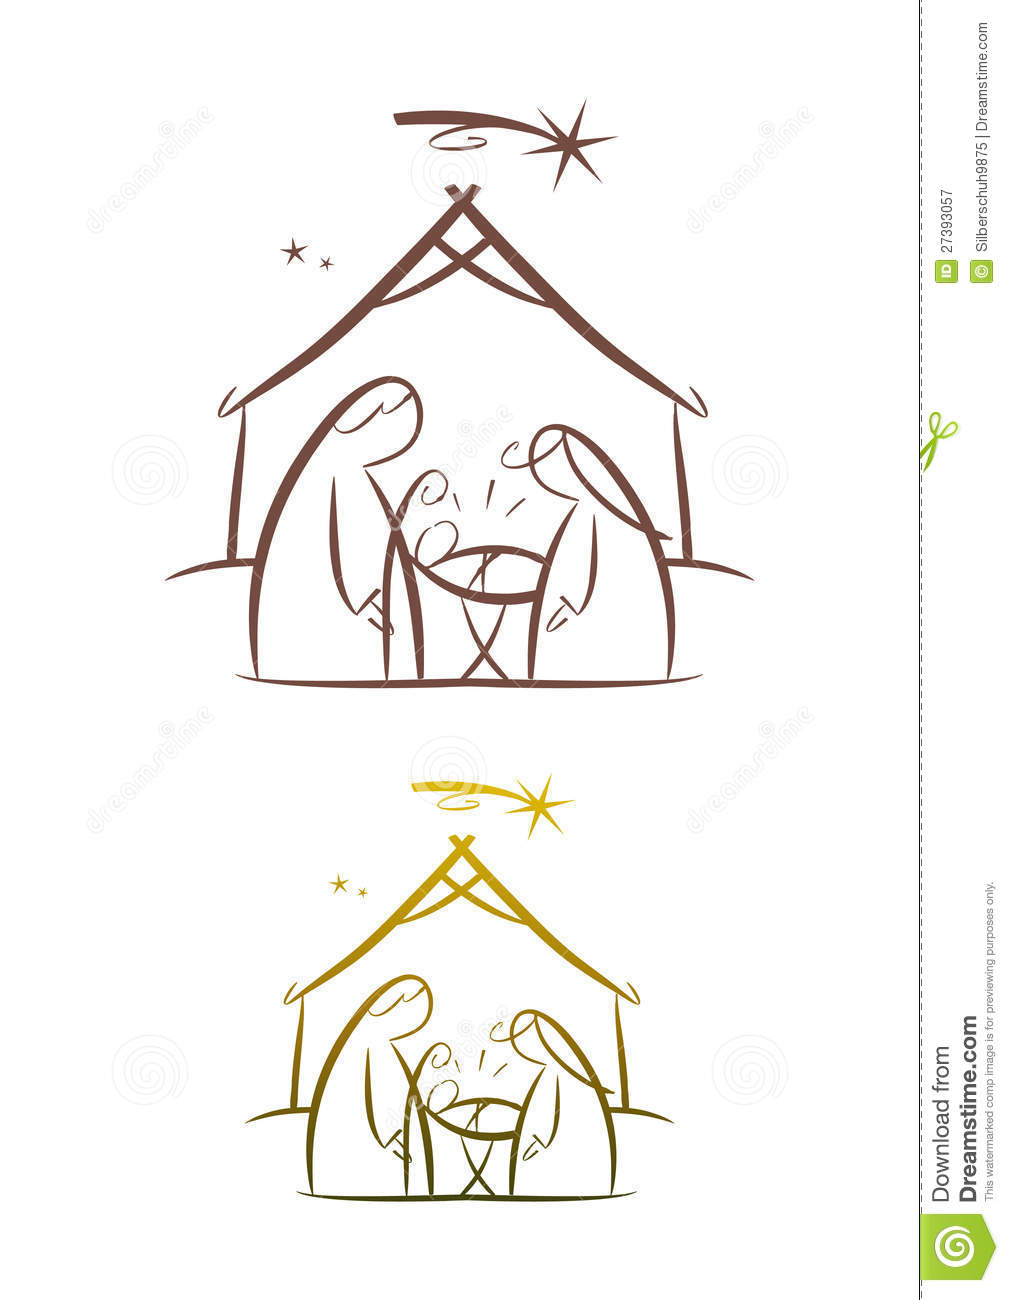 Line Art Nativity : Nativity scene father mother and child stock vector